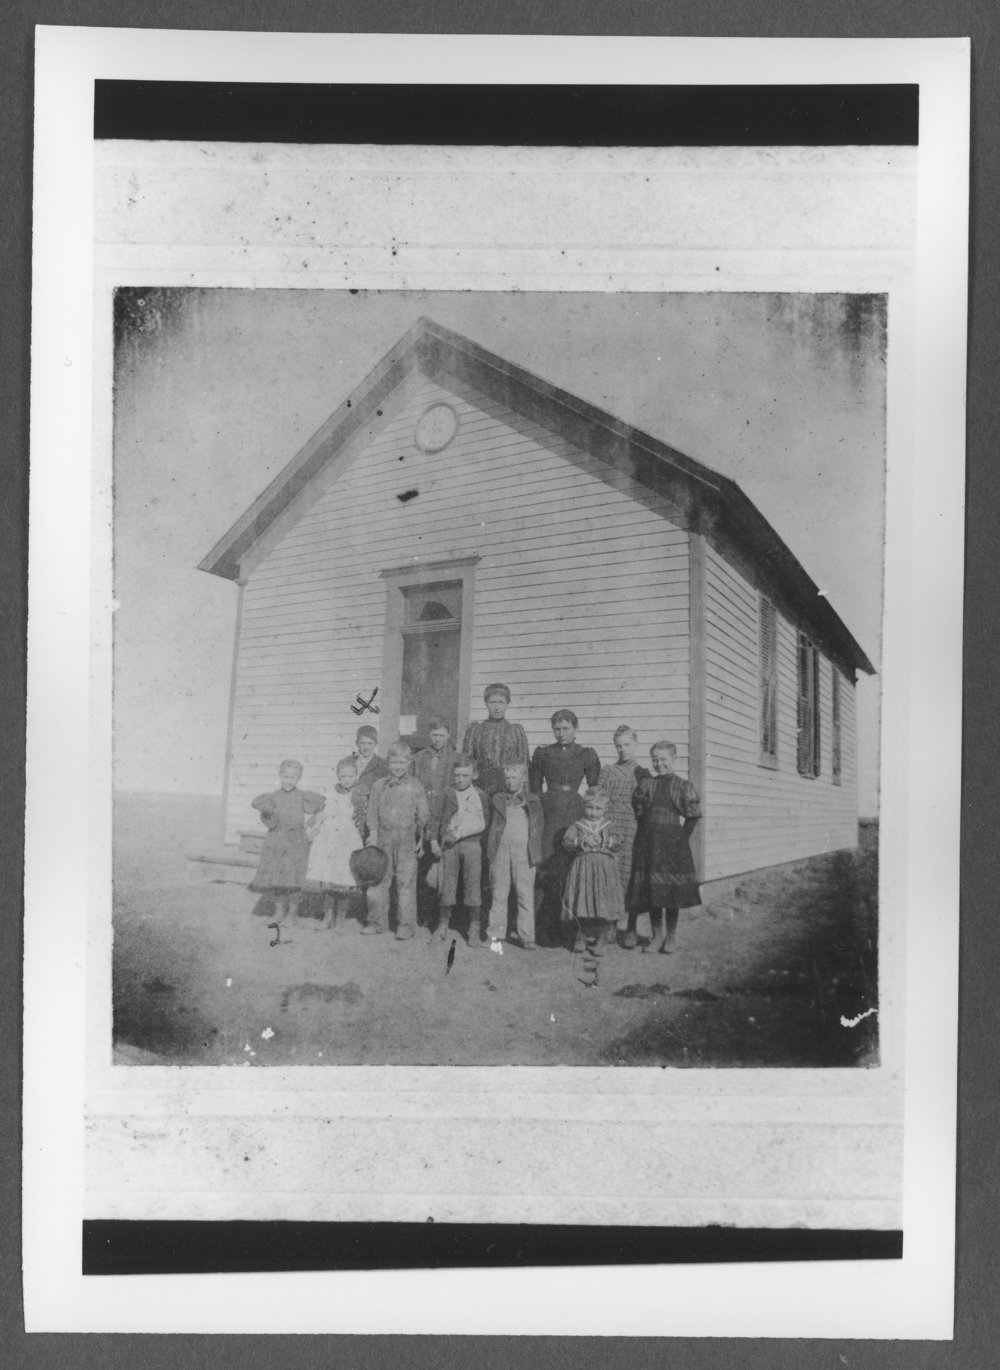 Scenes of Sherman County, Kansas - Muldrow School, about 1898.